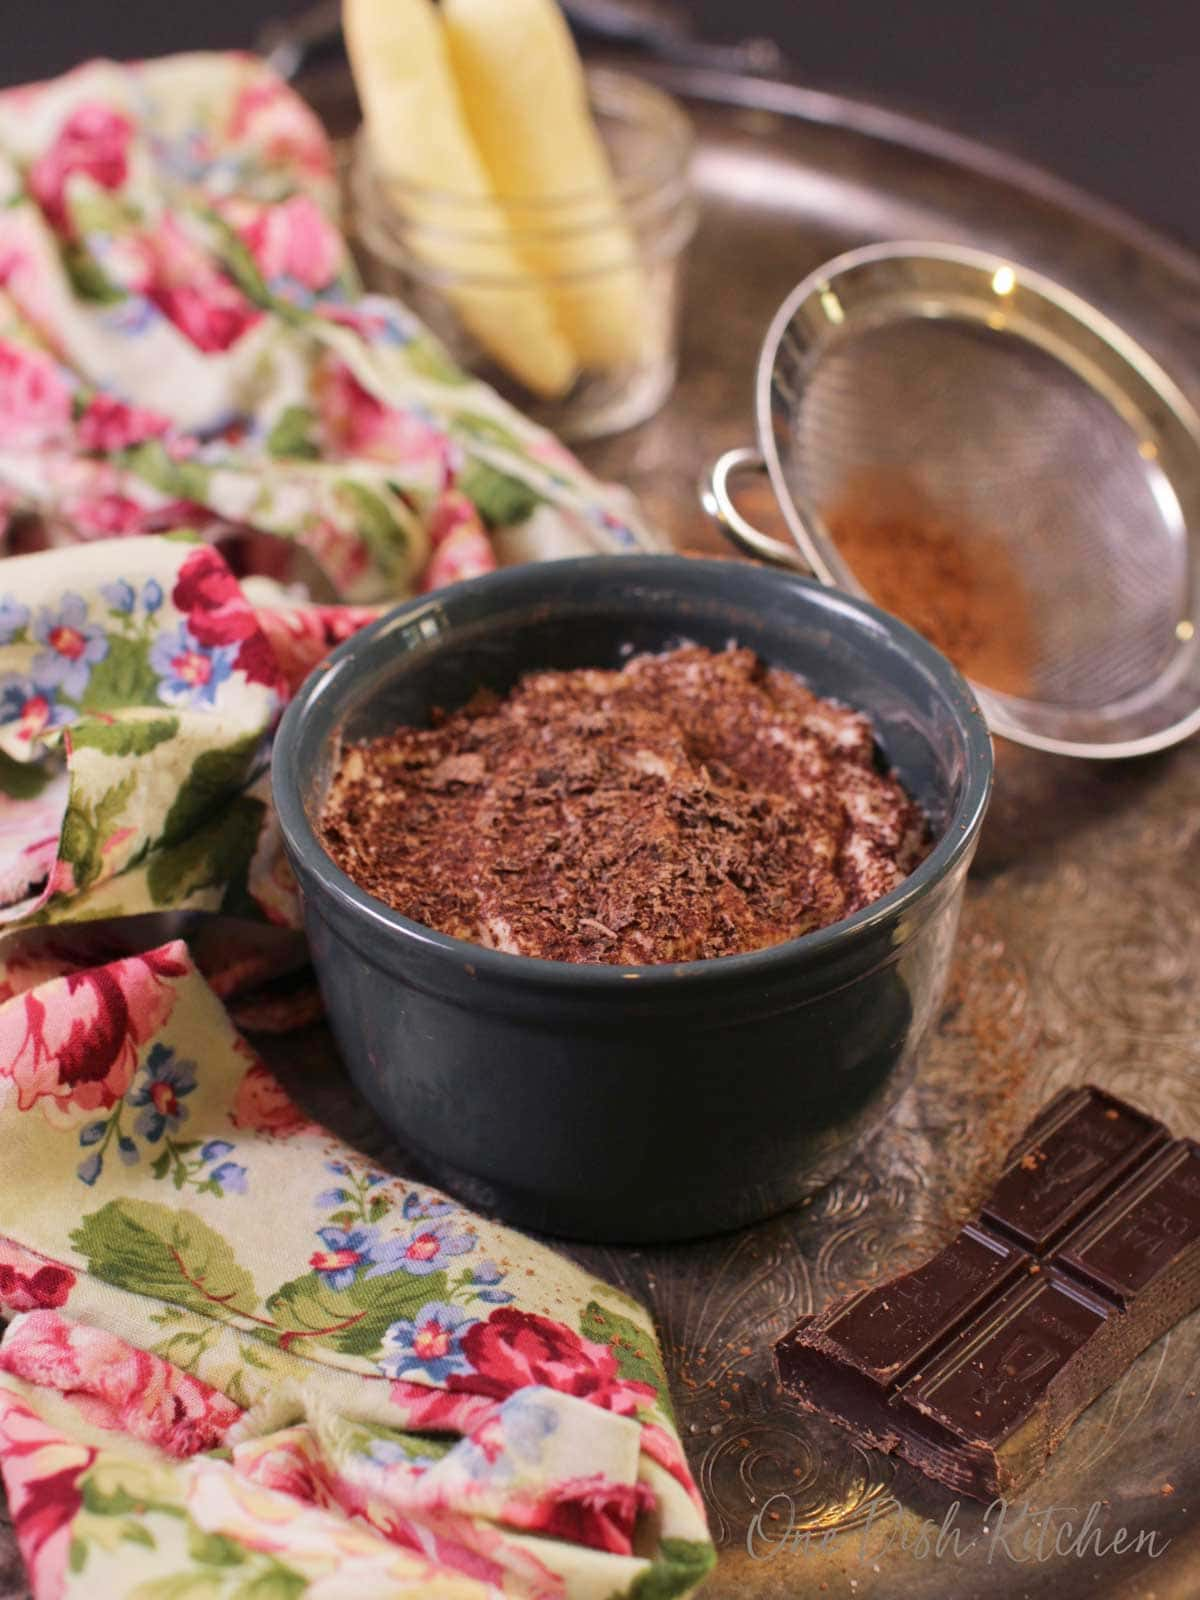 A mini tiramisu topped with chocolate shavings in a circular dish on a metal tray with a floral cloth napkin, a piece of a chocolate bar, and cocoa powder in a sieve